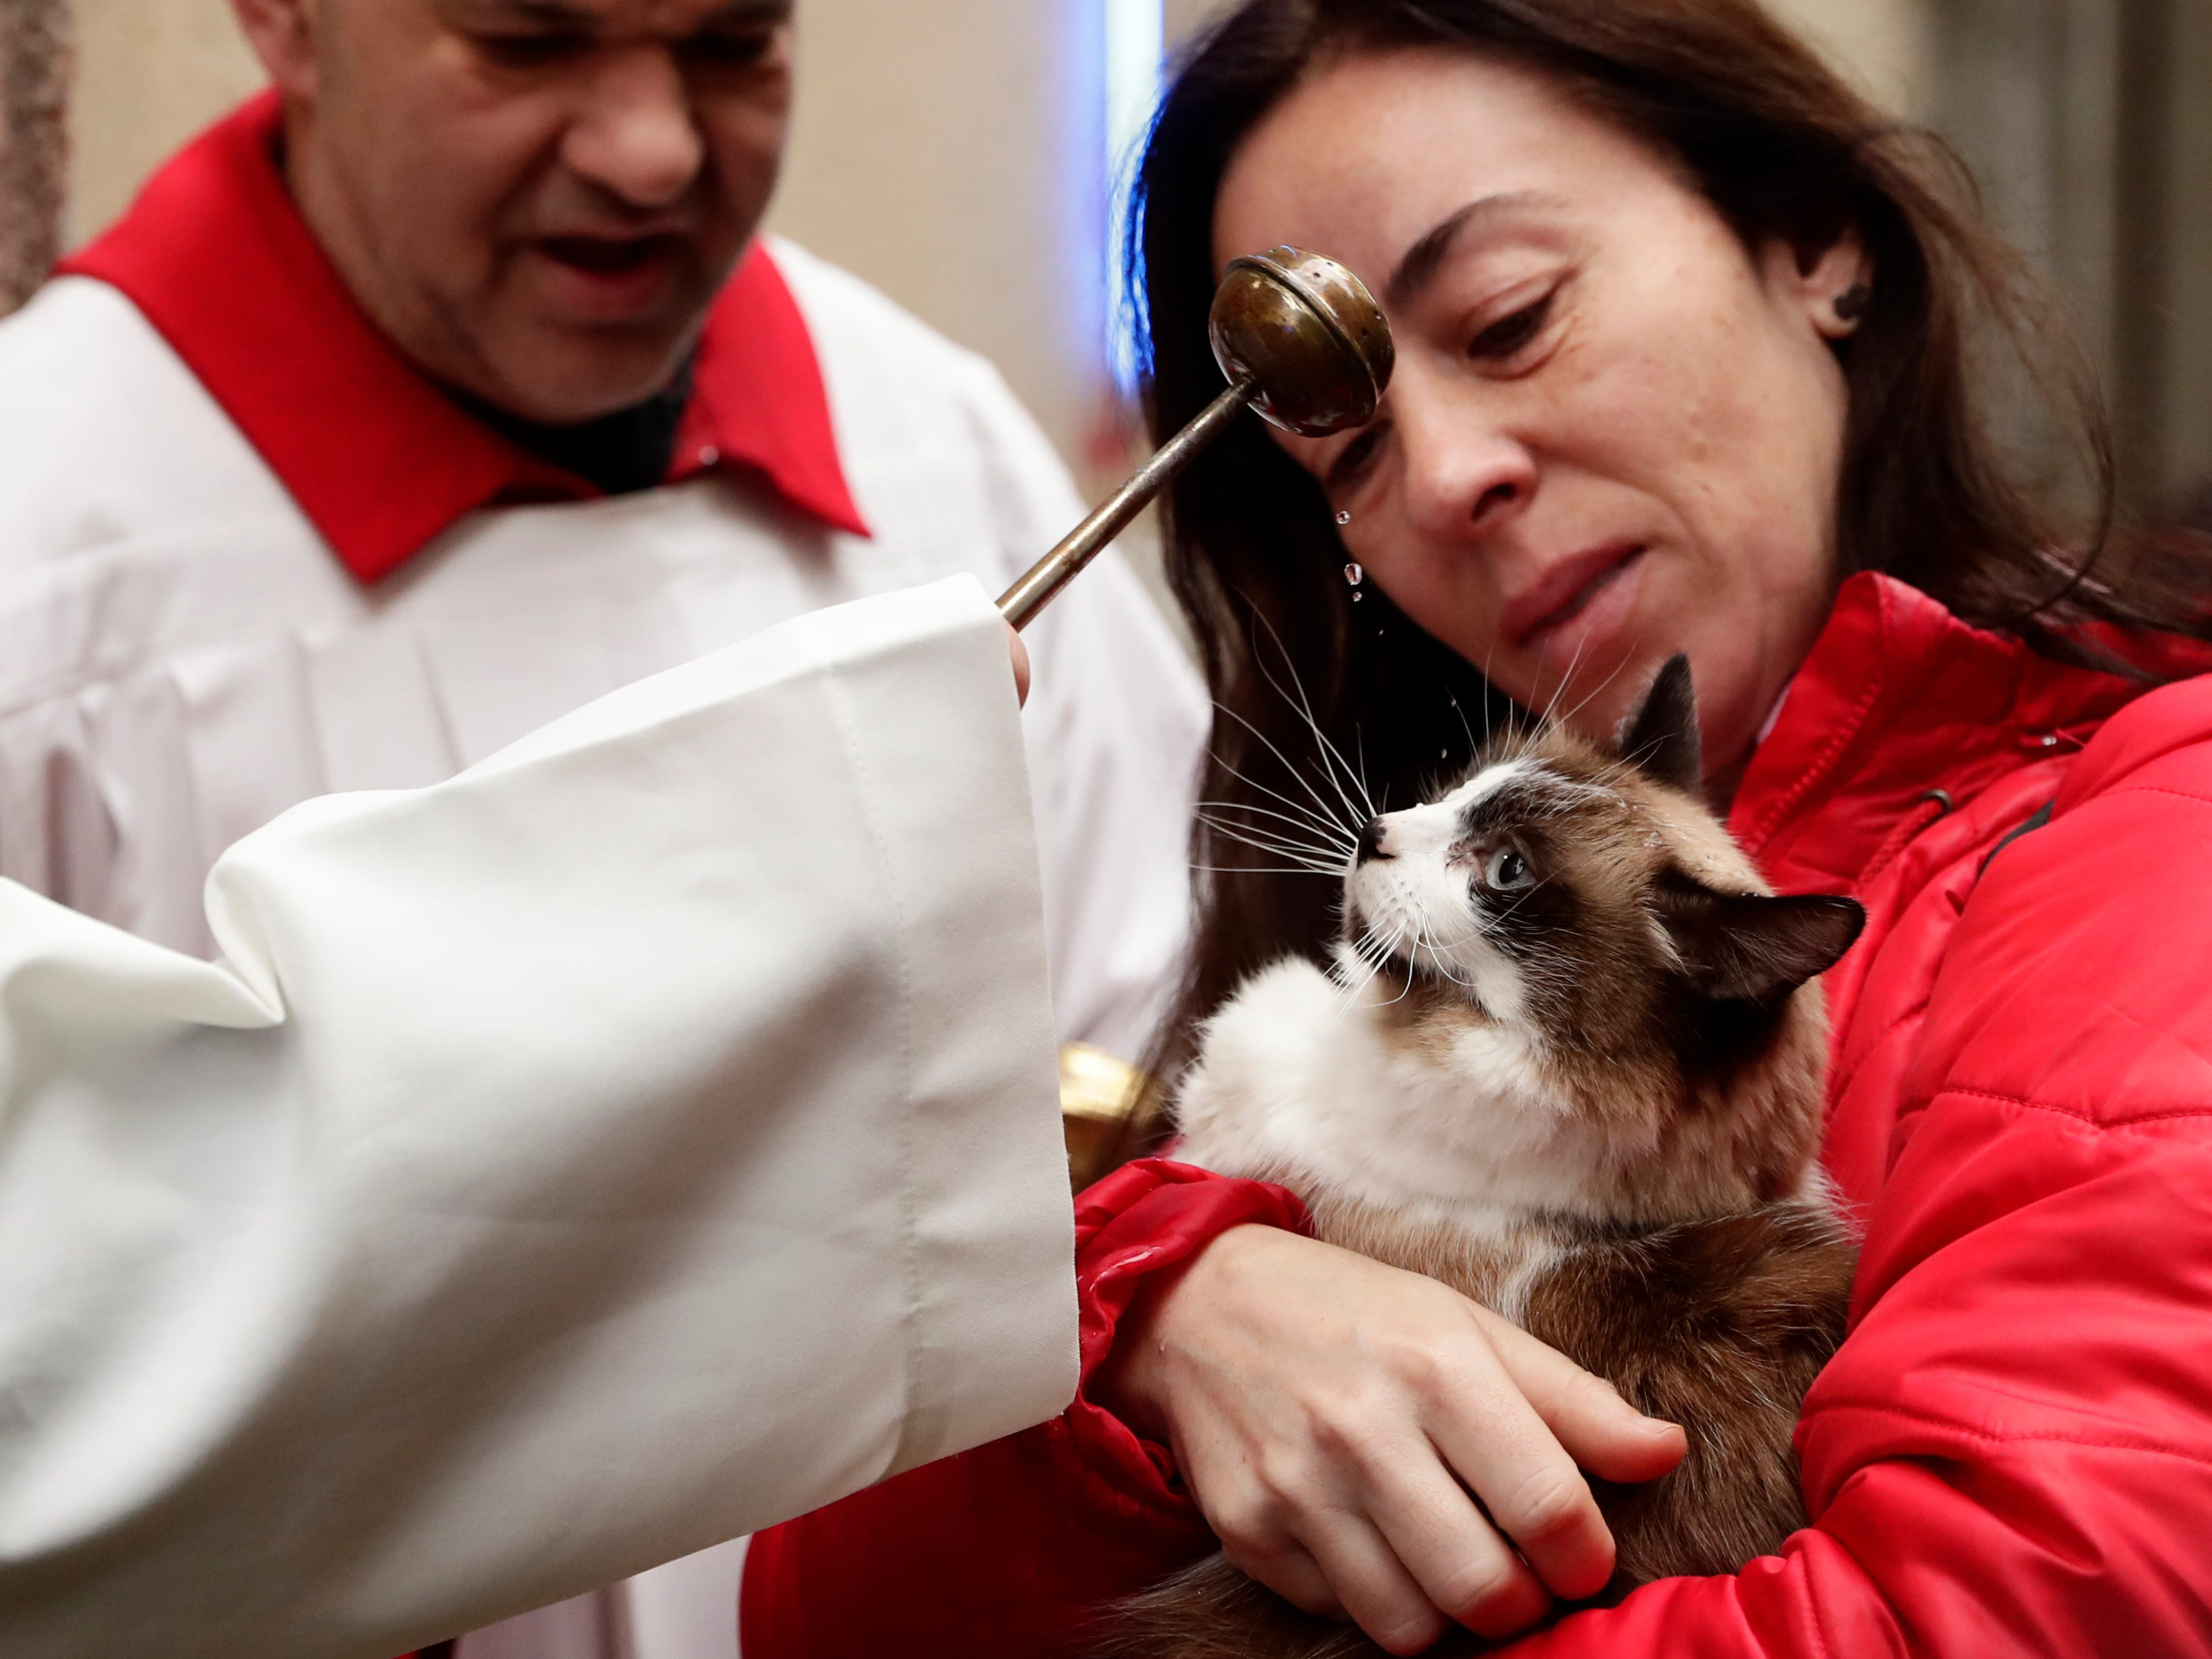 A priest anoints a cat at the San Anton church during the feast of Saint Anthony, Spain's patron saint of animals in Madrid, Spain, Thursday, Jan. 17, 2019. The feast is celebrated each year in many parts of Spain and people bring their animals to churches to be blessed.